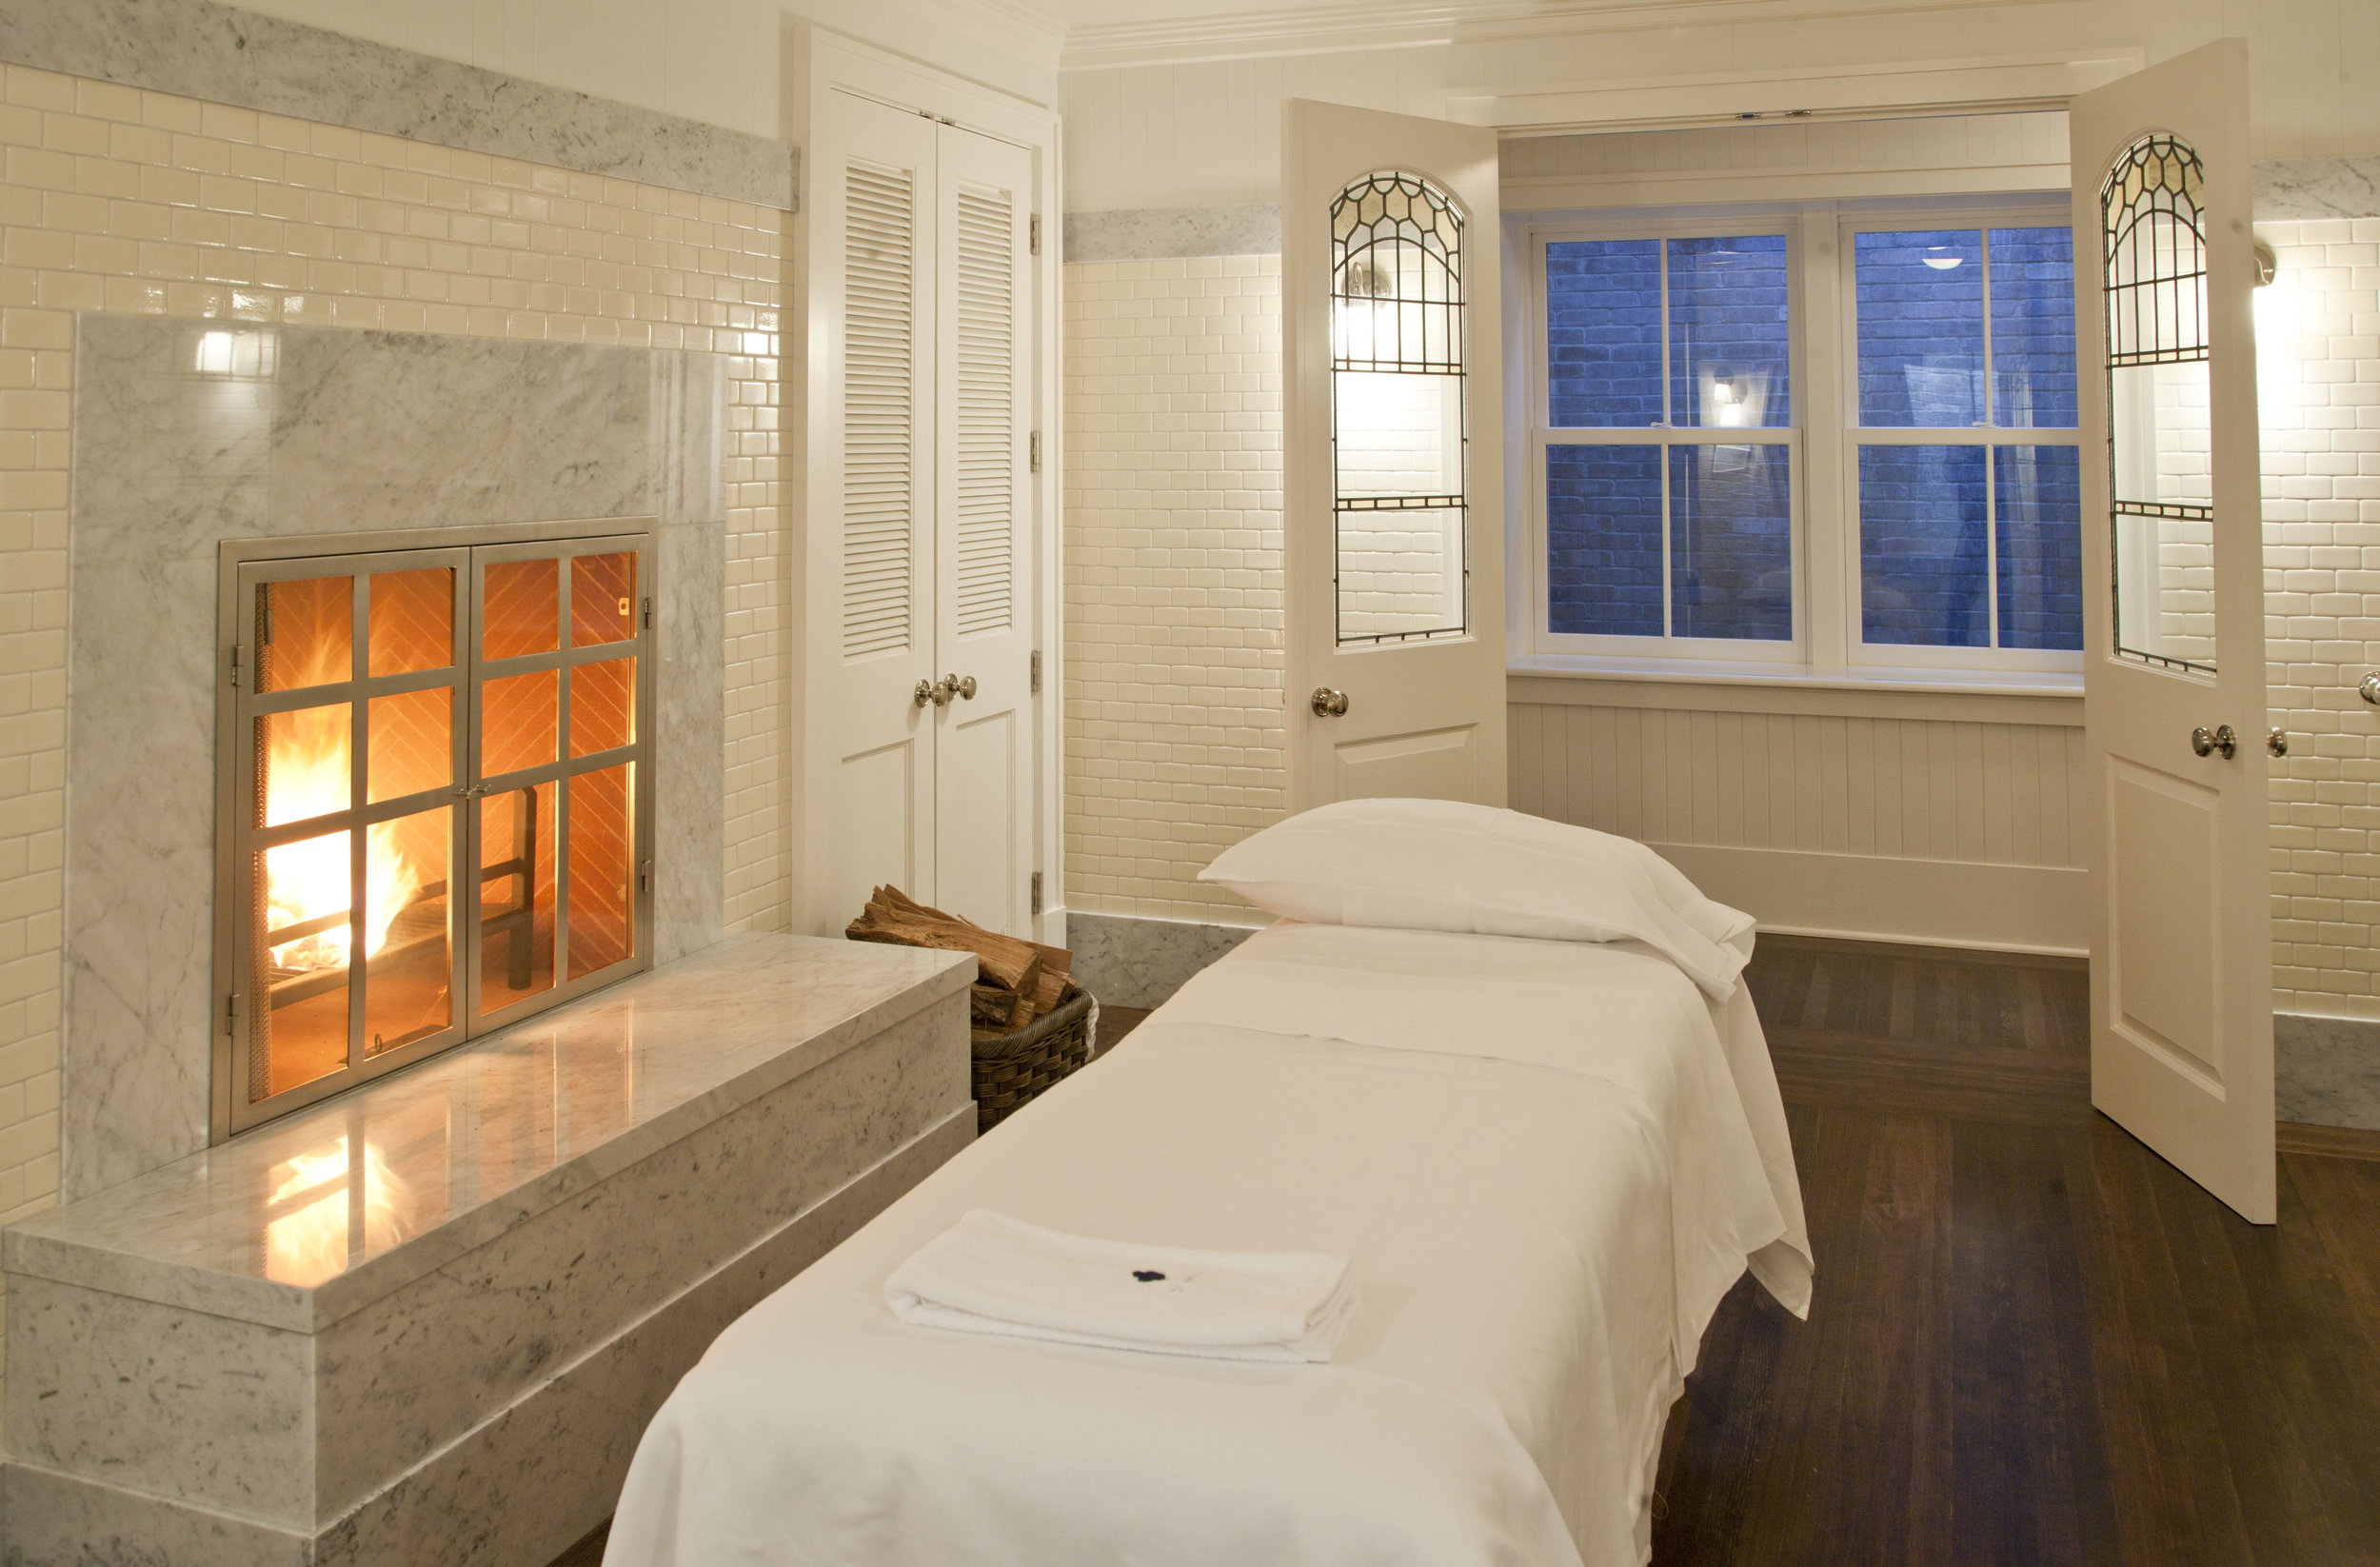 21-House-spa-room.jpg